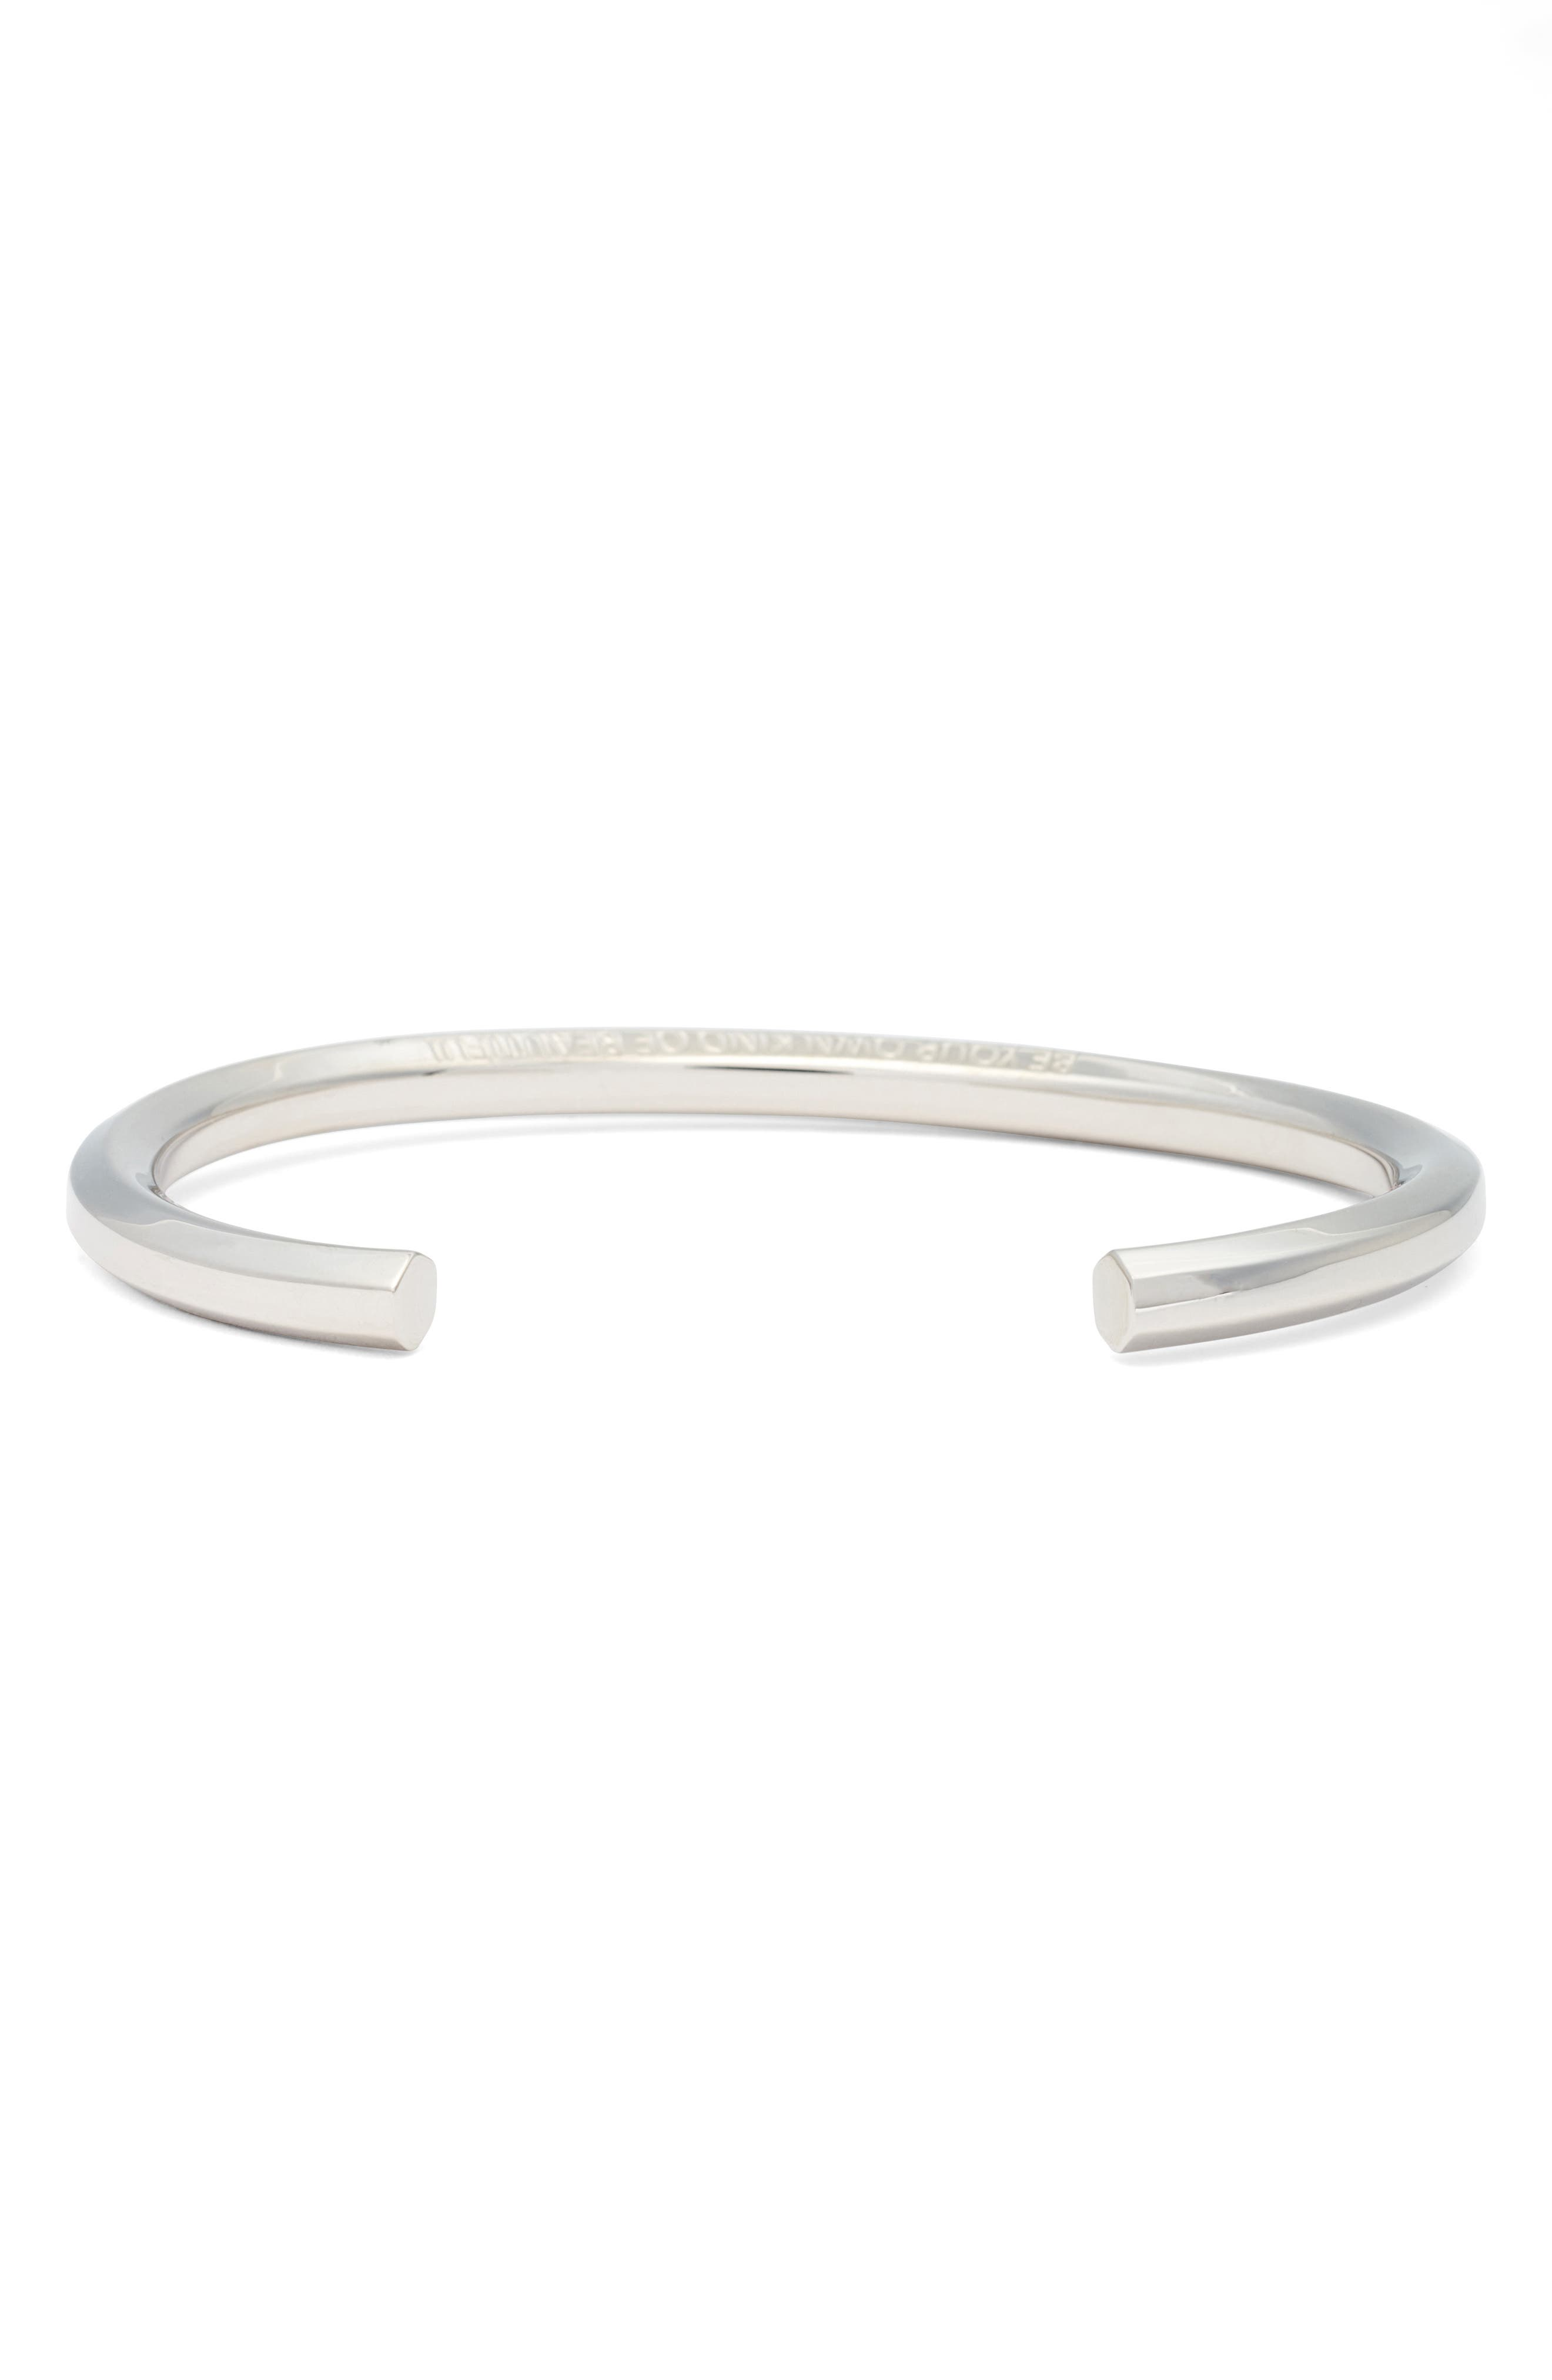 Be Your Own Kind of Beautiful Cuff,                             Alternate thumbnail 2, color,                             Silver